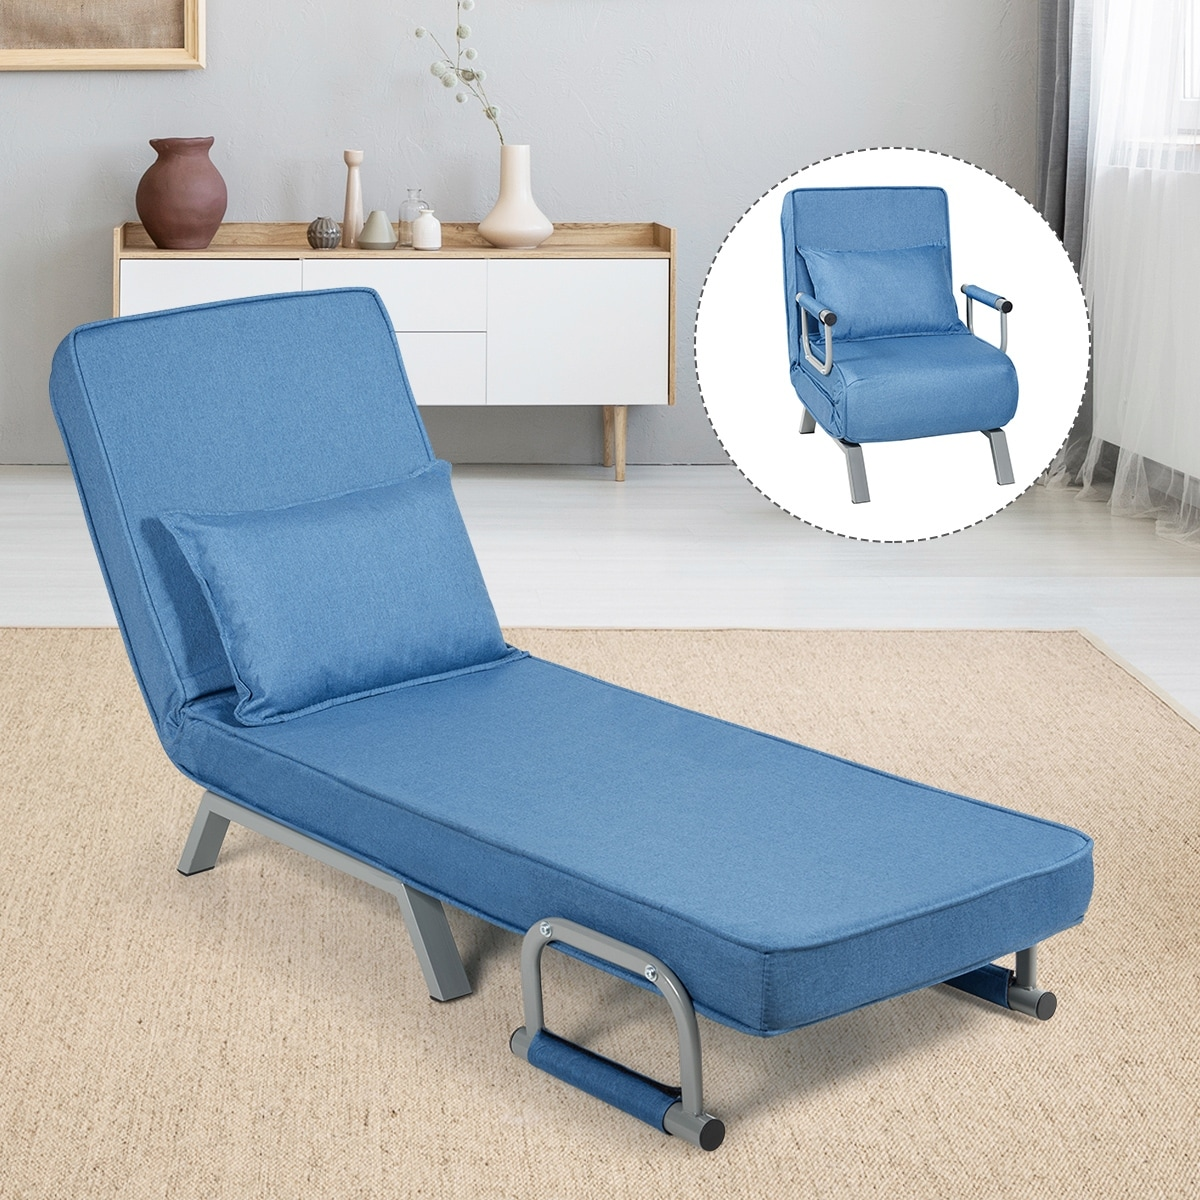 5 Position Recliner Adjustable Backrest Folding Armchair Sleeper with Pillow Leisure Chaise Lounge Couch for Home Office Single Padded Upholstered Seat icoXXch Convertible Sofa Bed Sleeper Chair